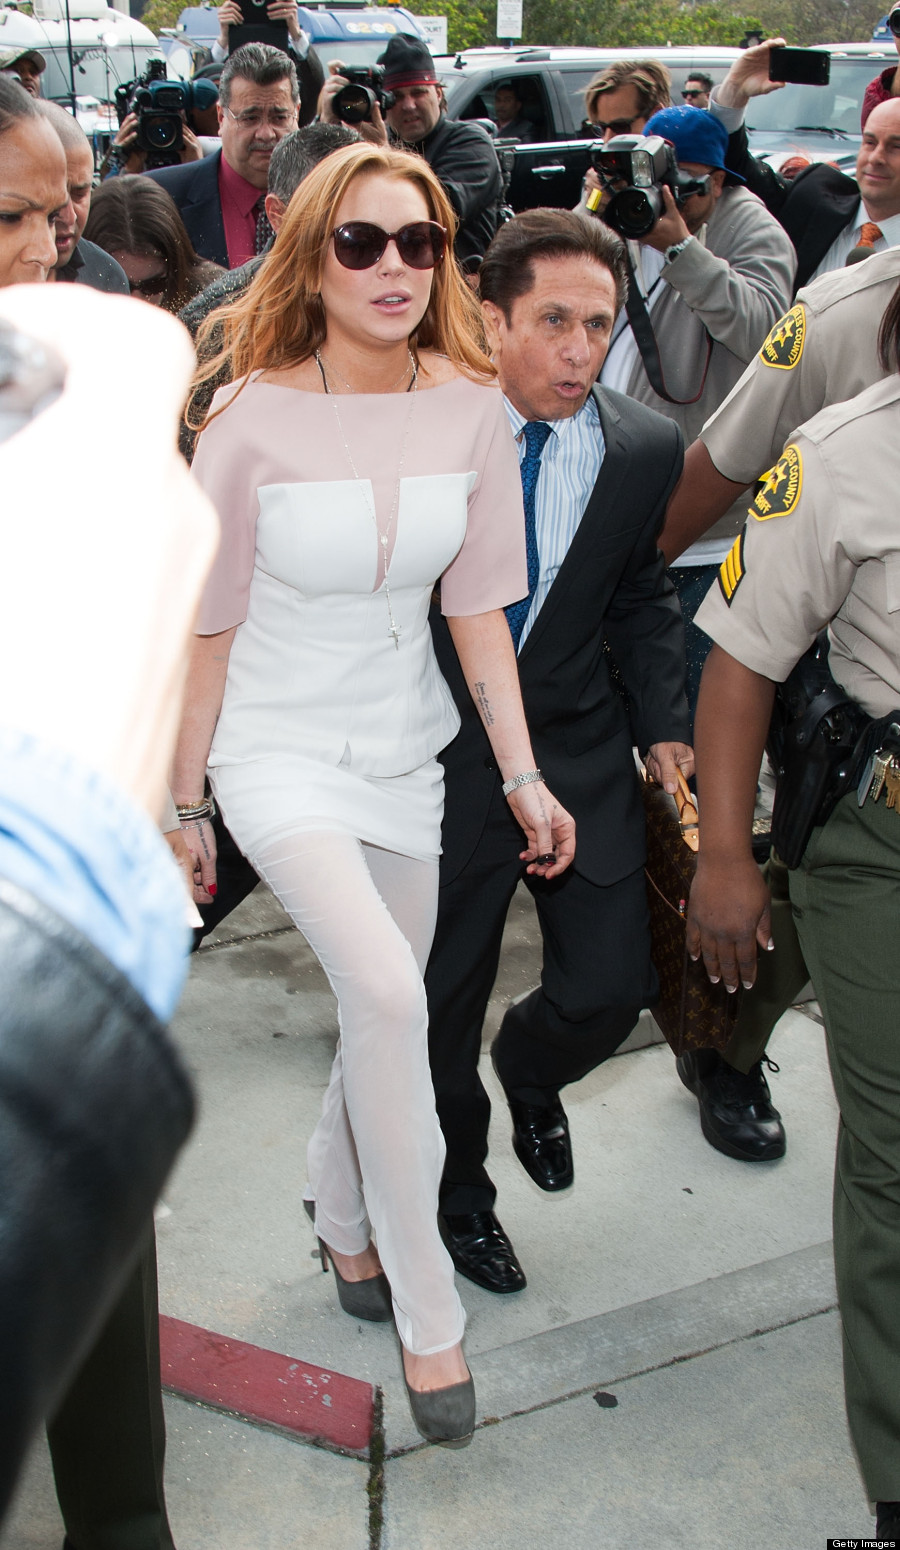 Lindsay Lohan Wears White Dress To Court In Santa Monica (PHOTO)